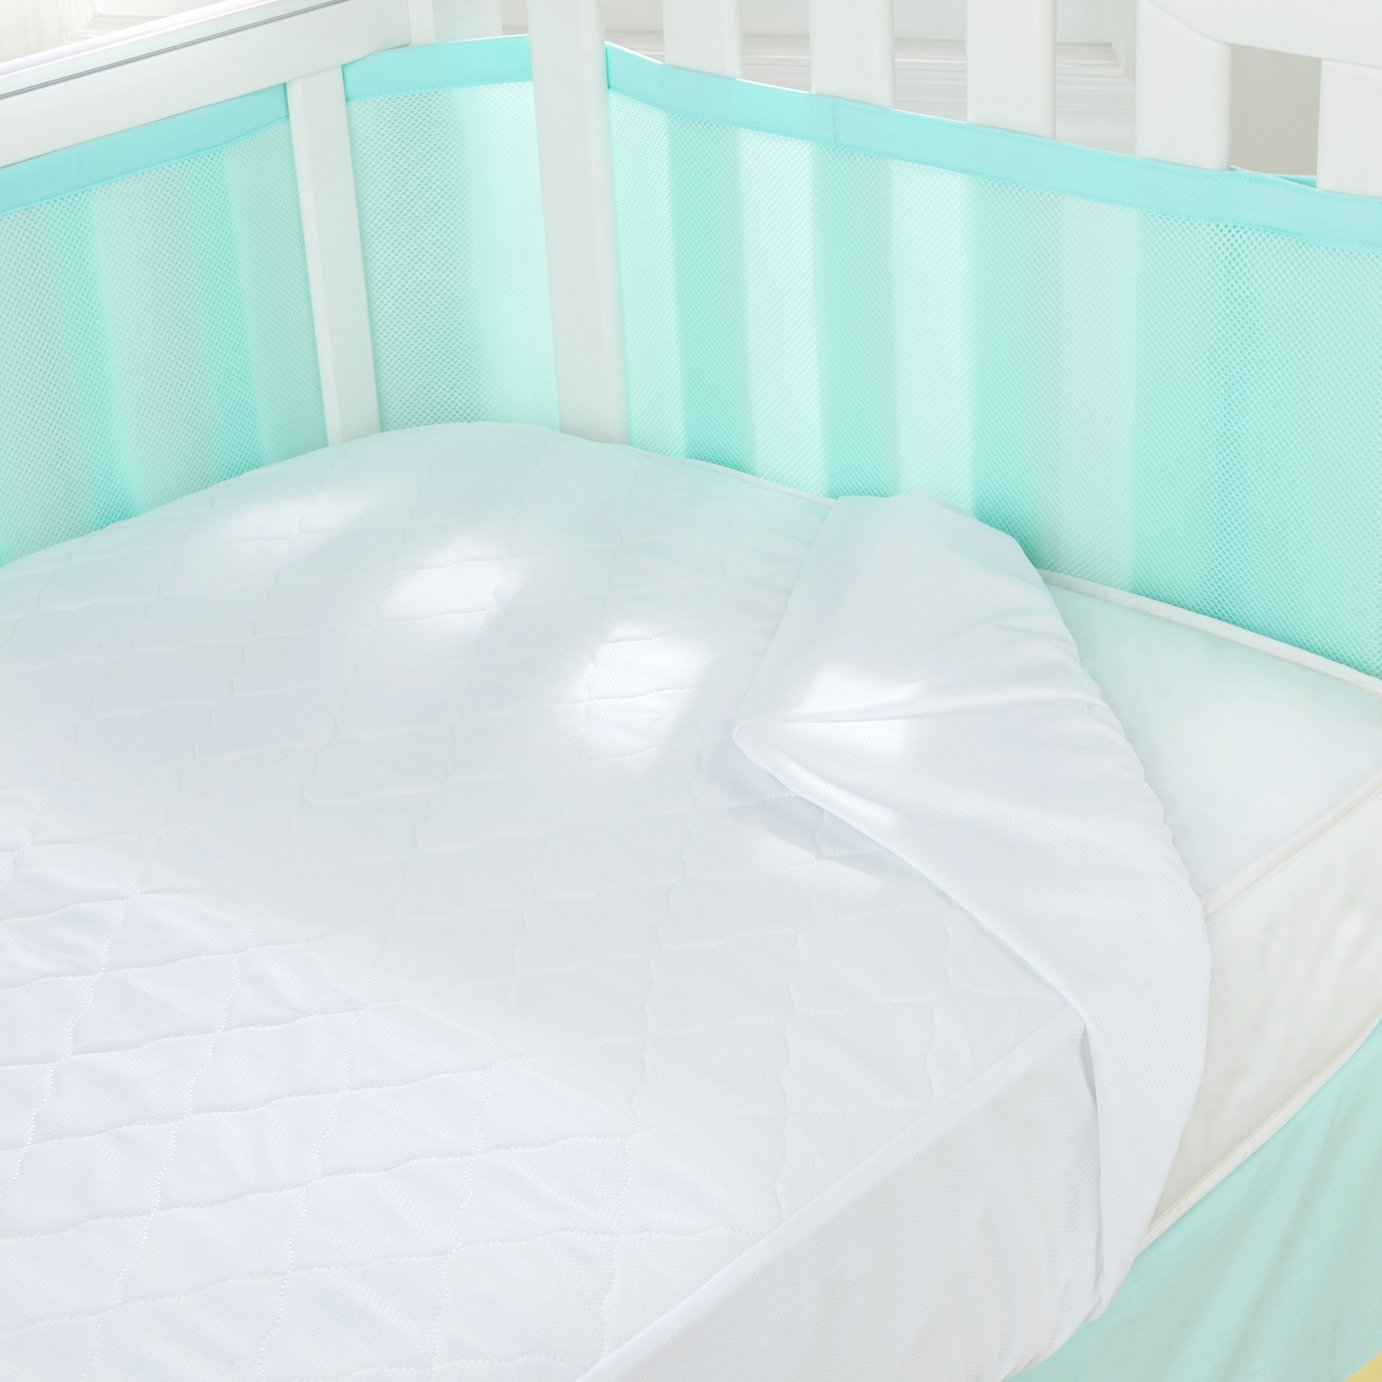 BreathableBaby 3-in-1 Cot Bed Mattress Pad - White